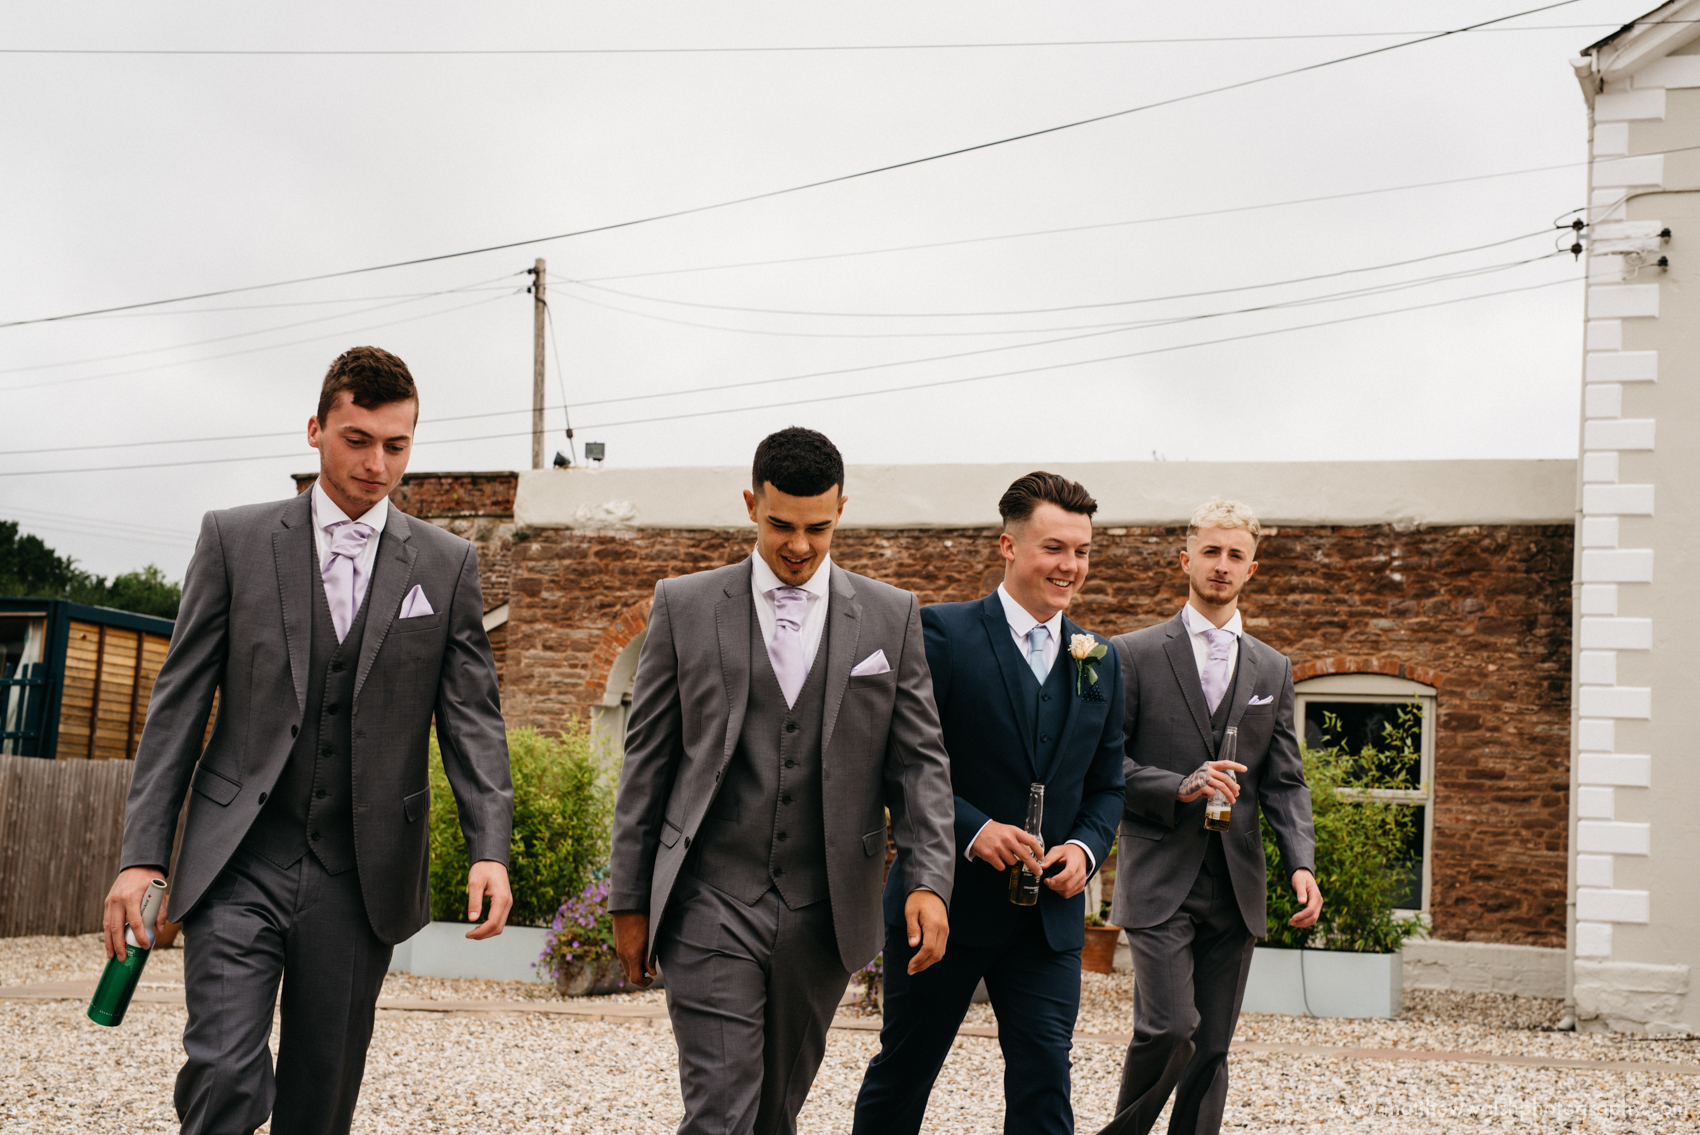 Groomsmen walking and all looking dapper and feeling good